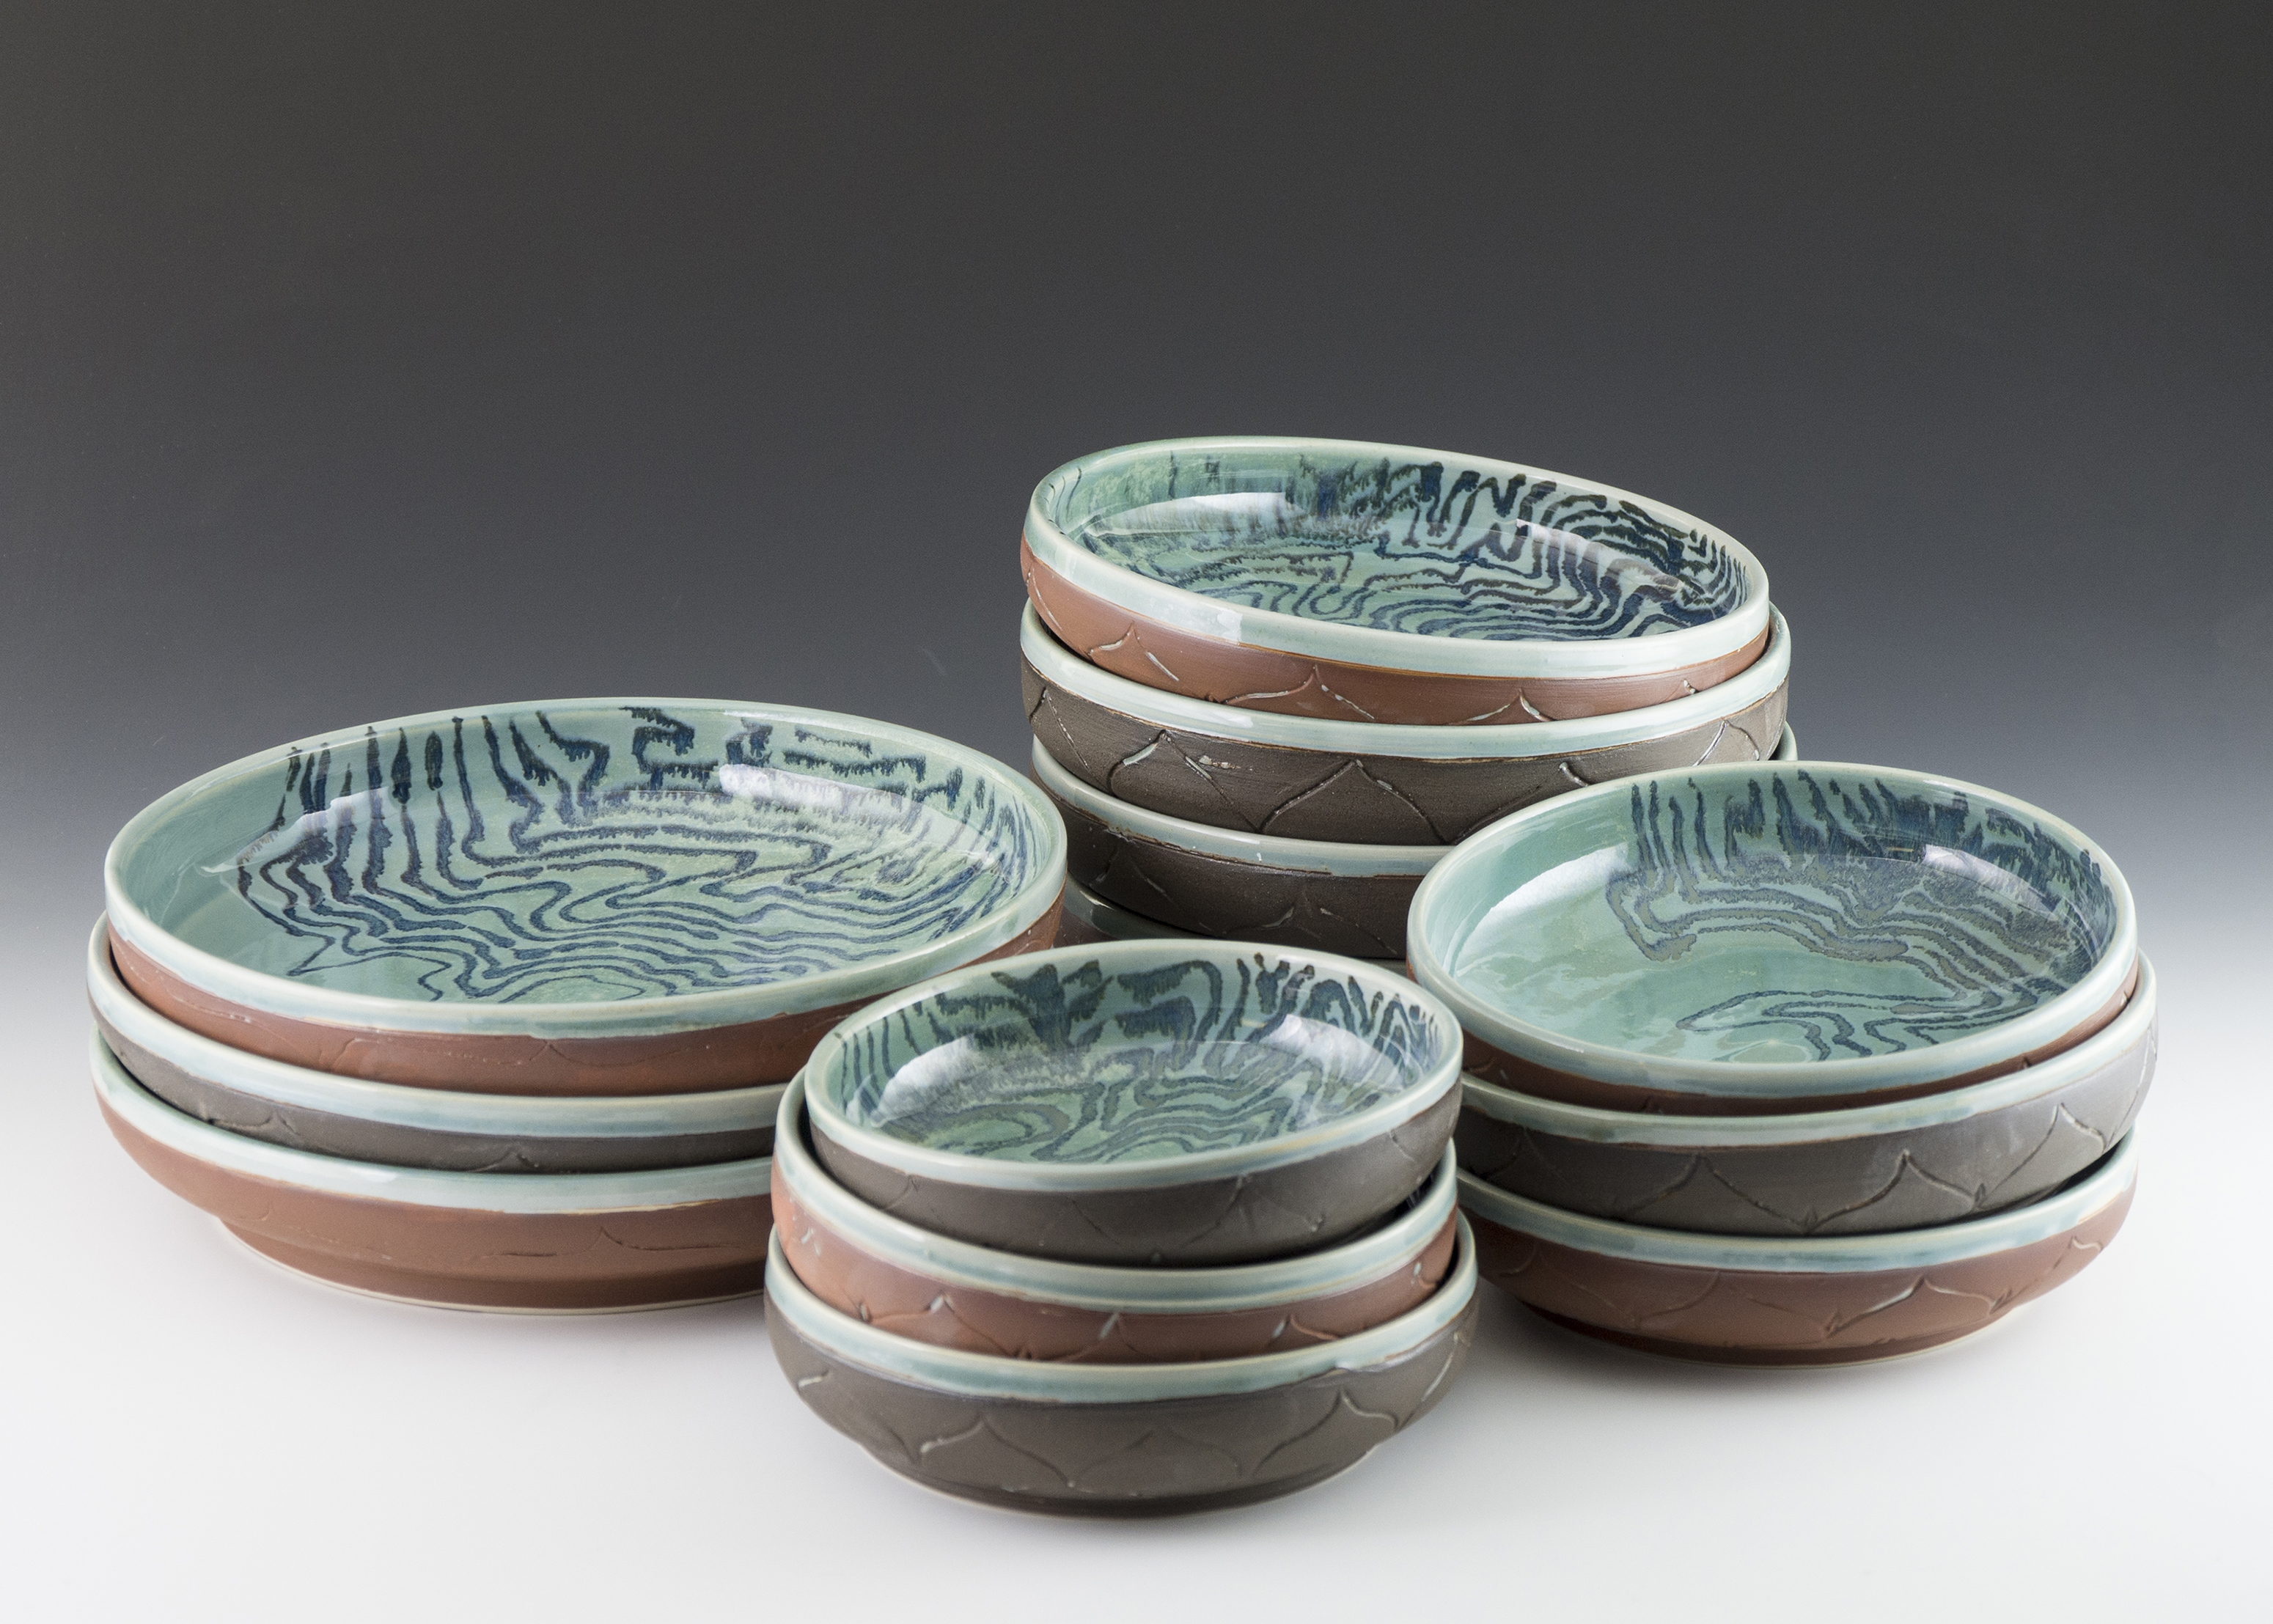 Assorted Bowls - 2016